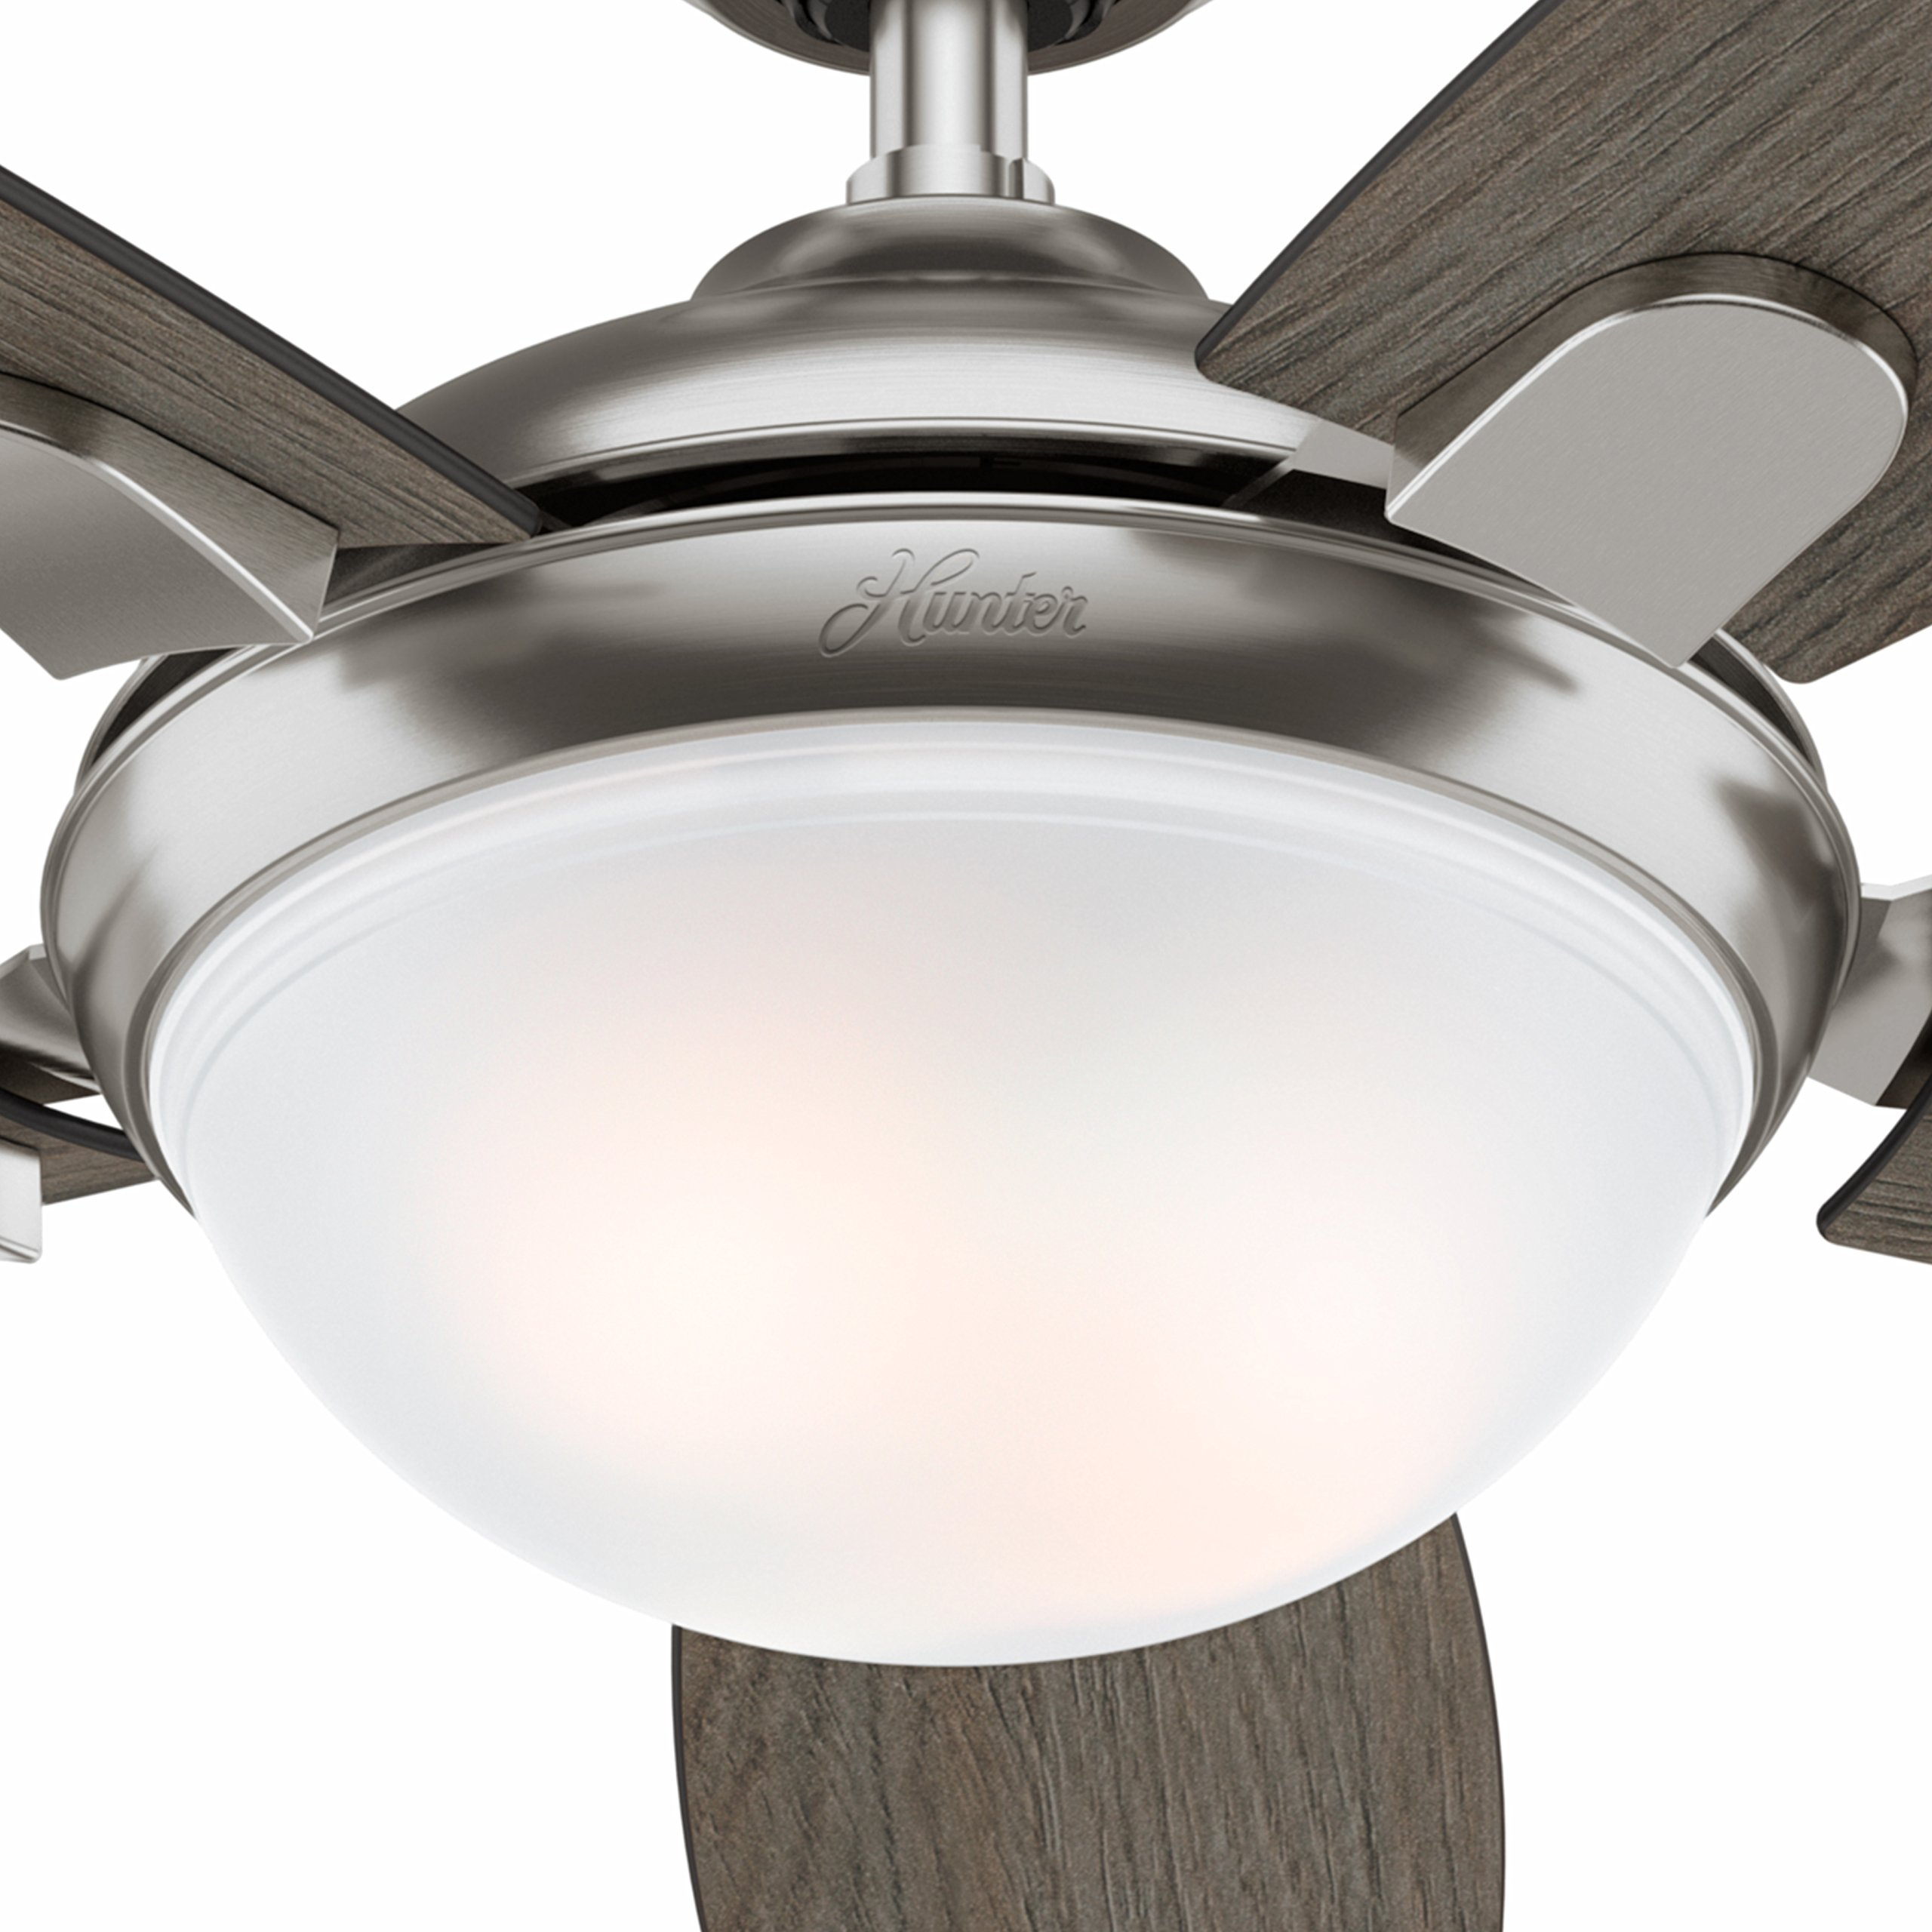 Hunter Fan 54 Contemporary Ceiling In Brushed Nickel With Led Light And Remote Certified Refurbished